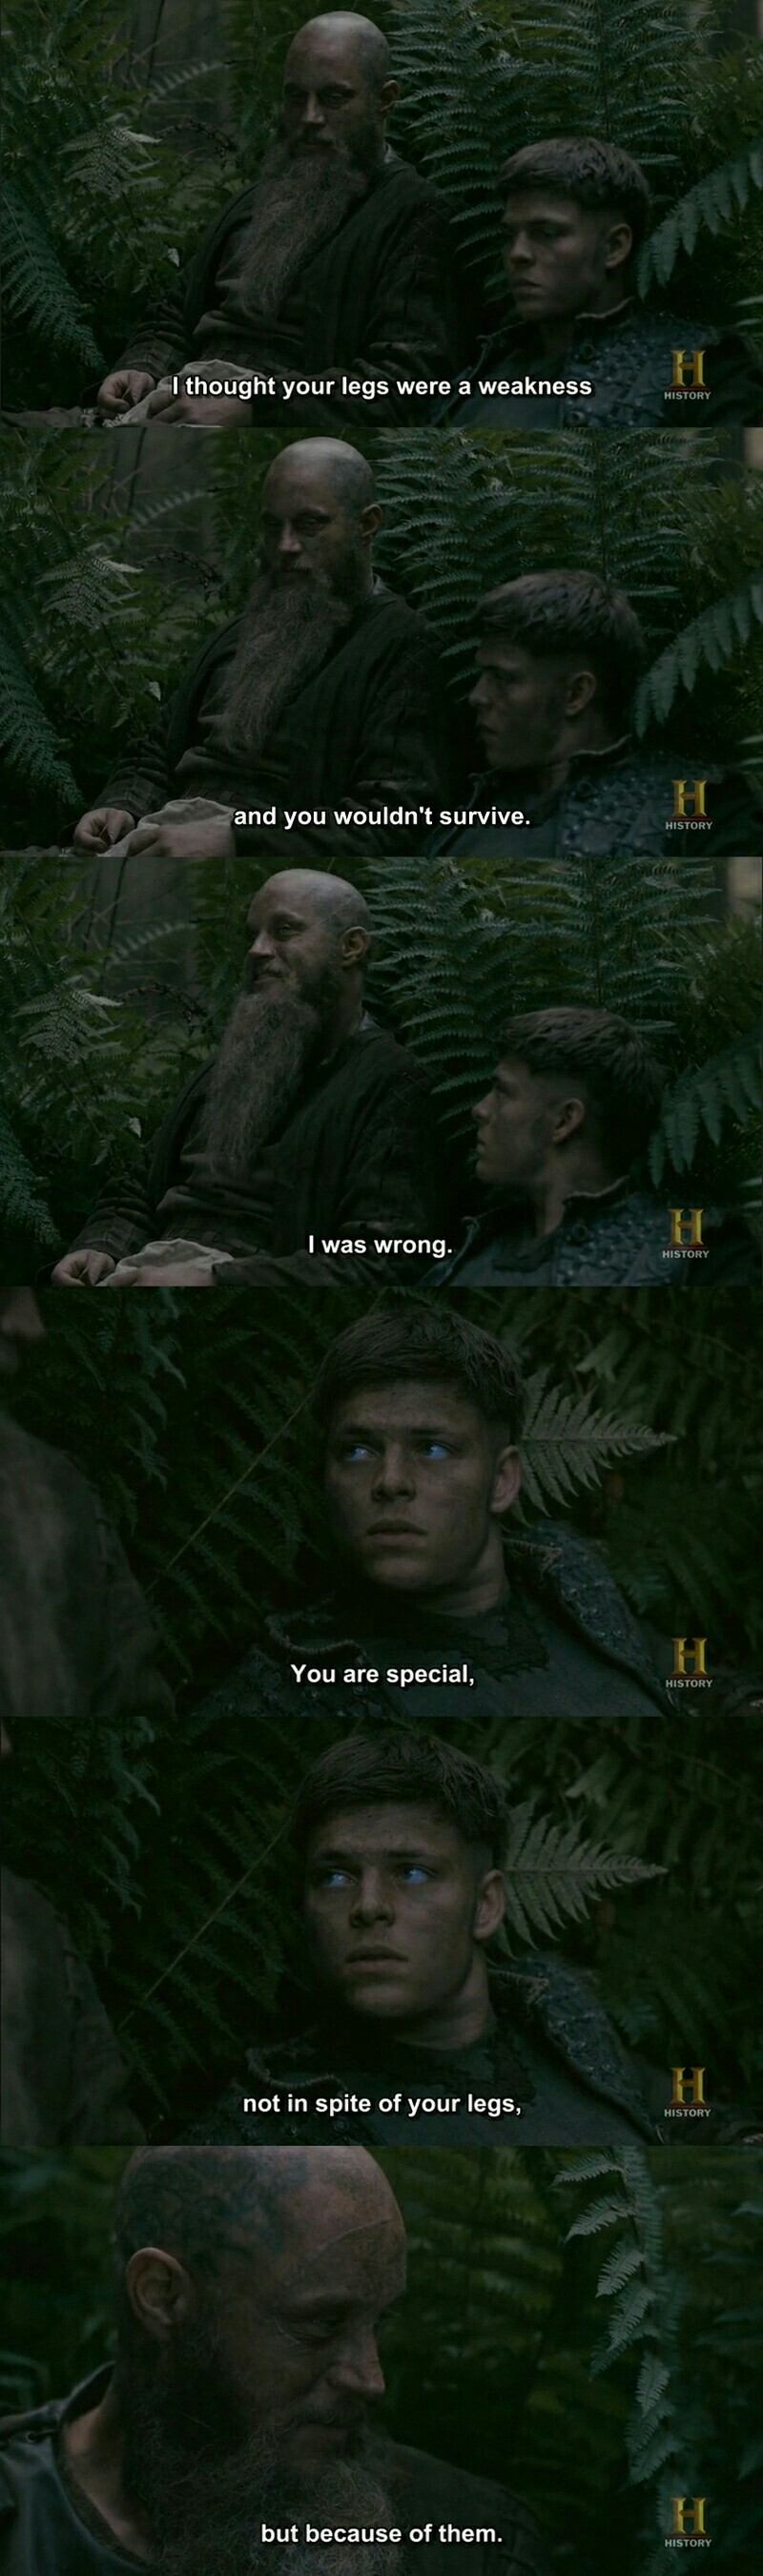 Ivar was waiting to hear this.